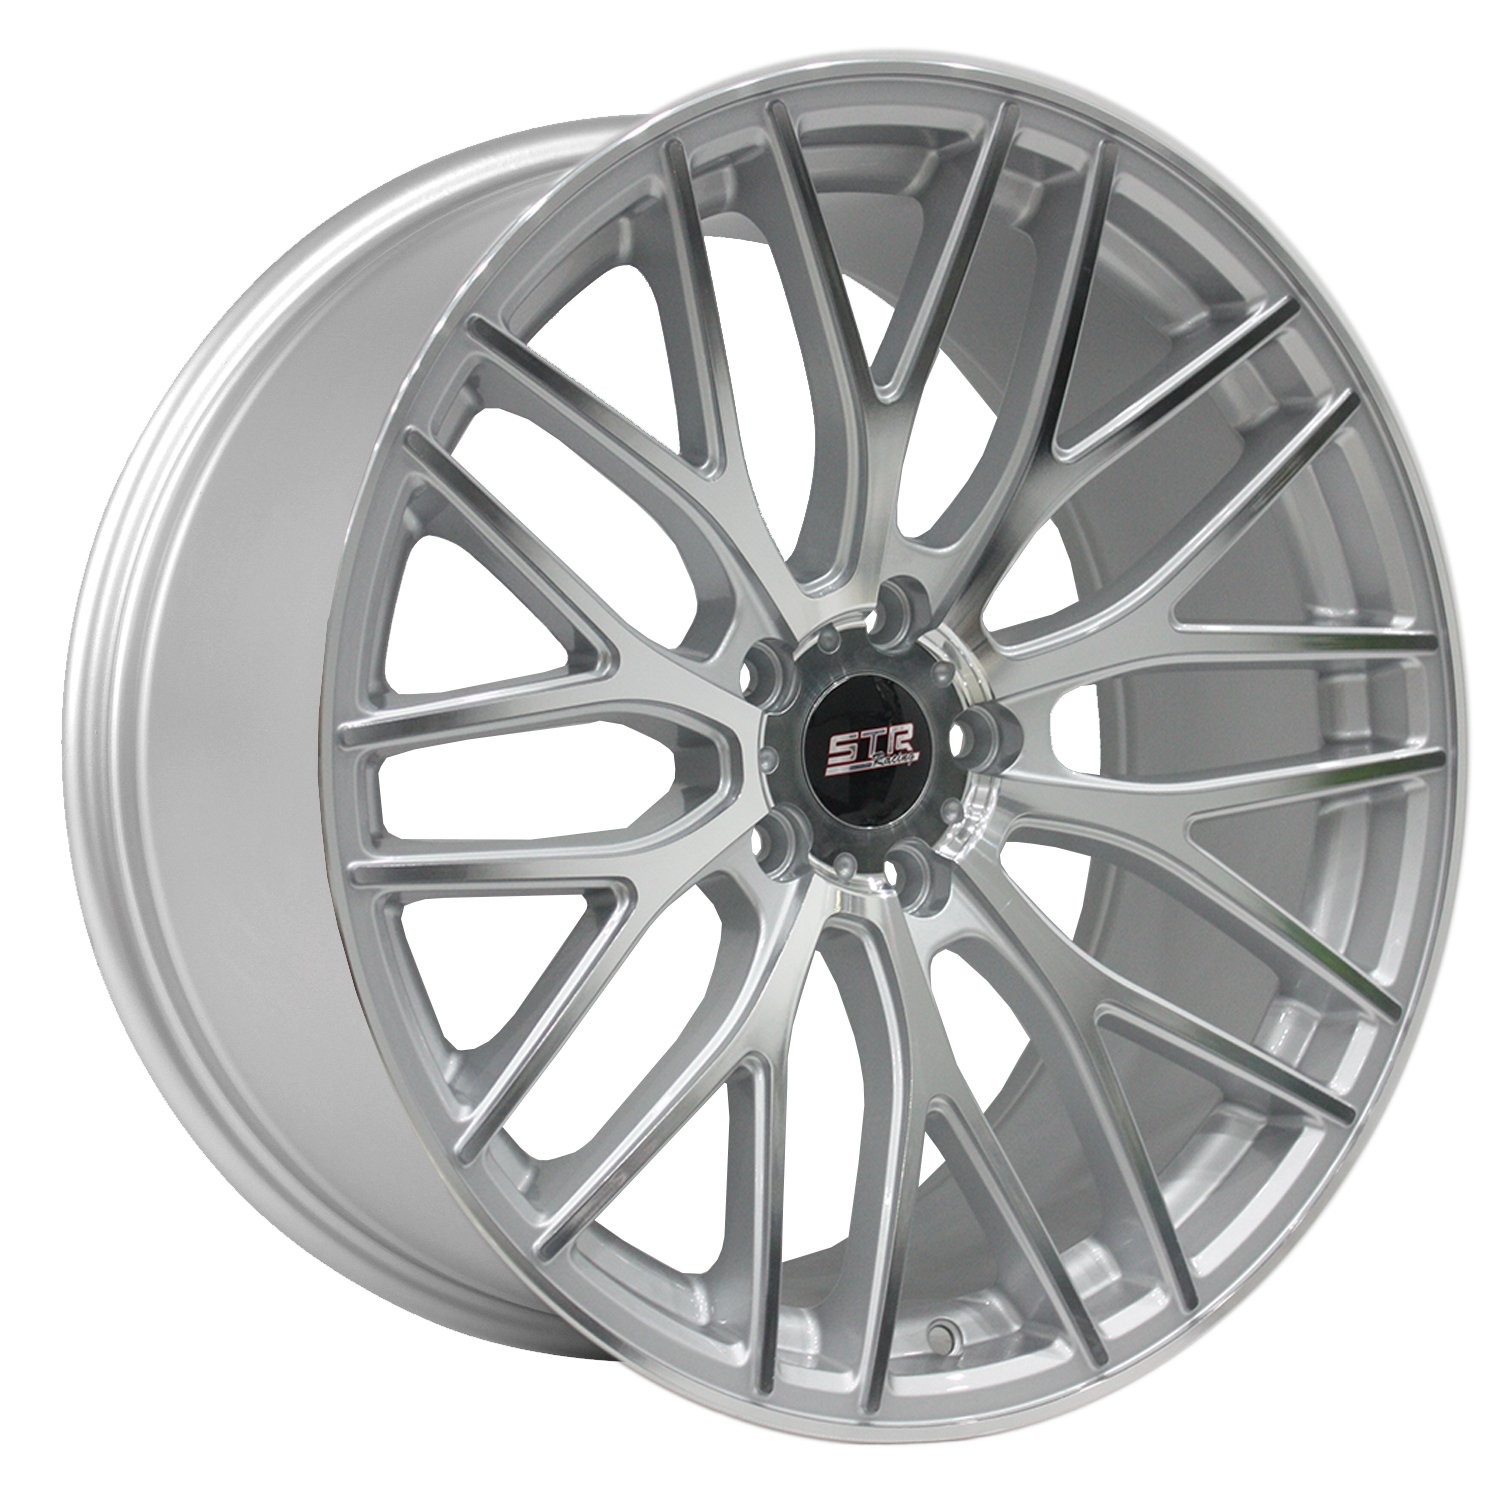 STR RACING STR615 Silver Wheel with Painted Finish and Machine Face (19 x 9.5 inches /5 x 114 mm, 40 mm Offset)